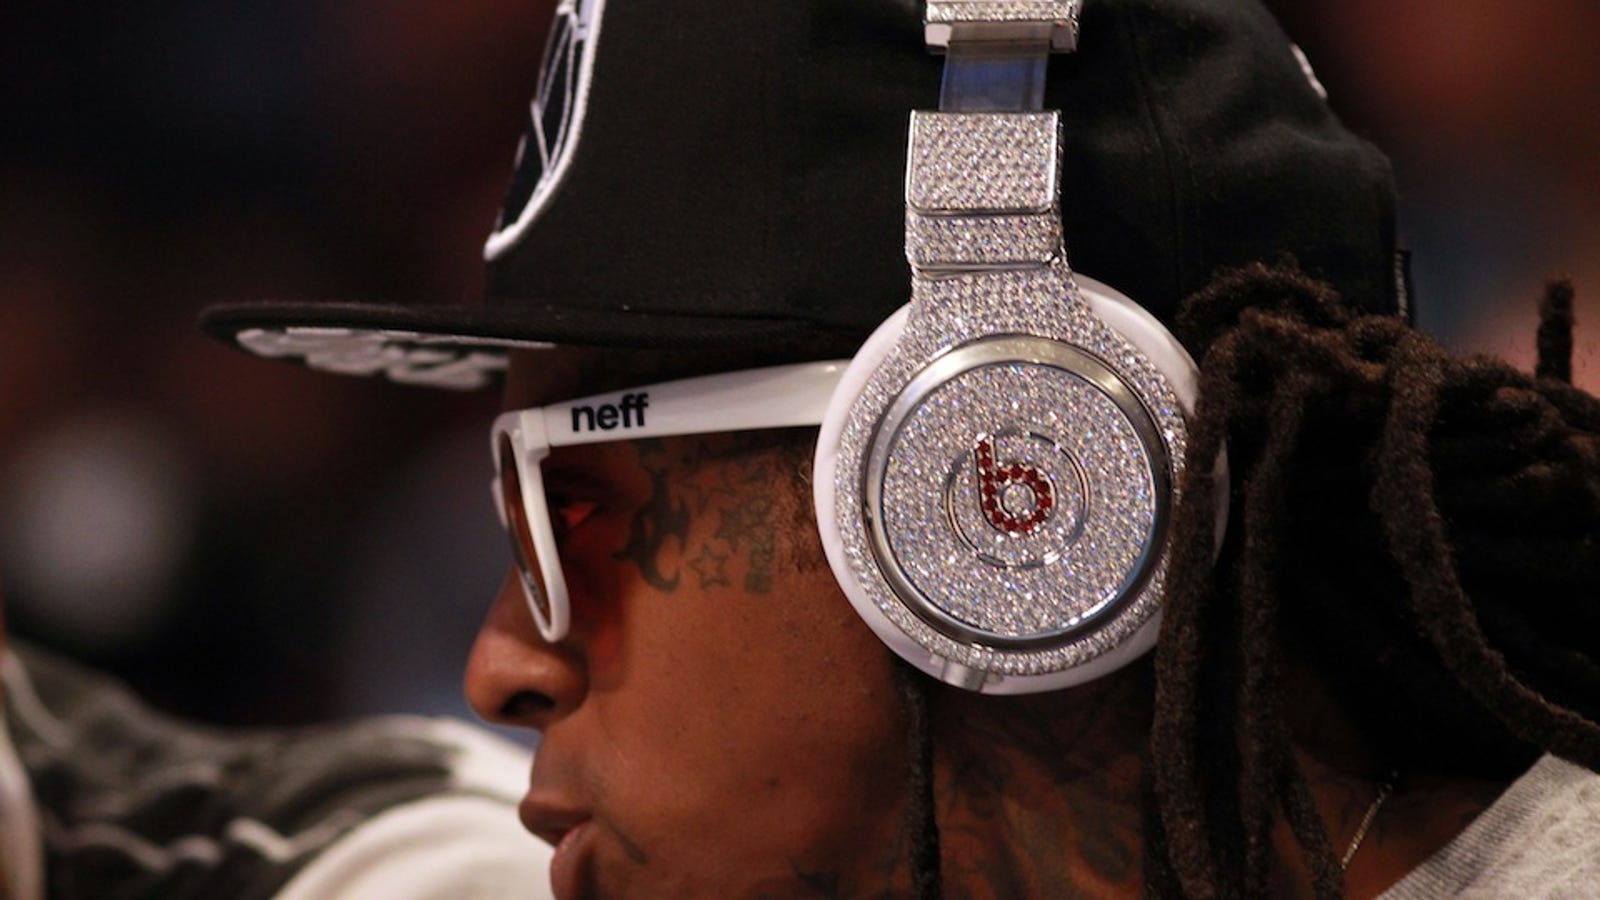 earbuds zeakko - Lil Wayne Wearing $1 Million Beats by Dre Headphones Is a Diamond Studded Mess